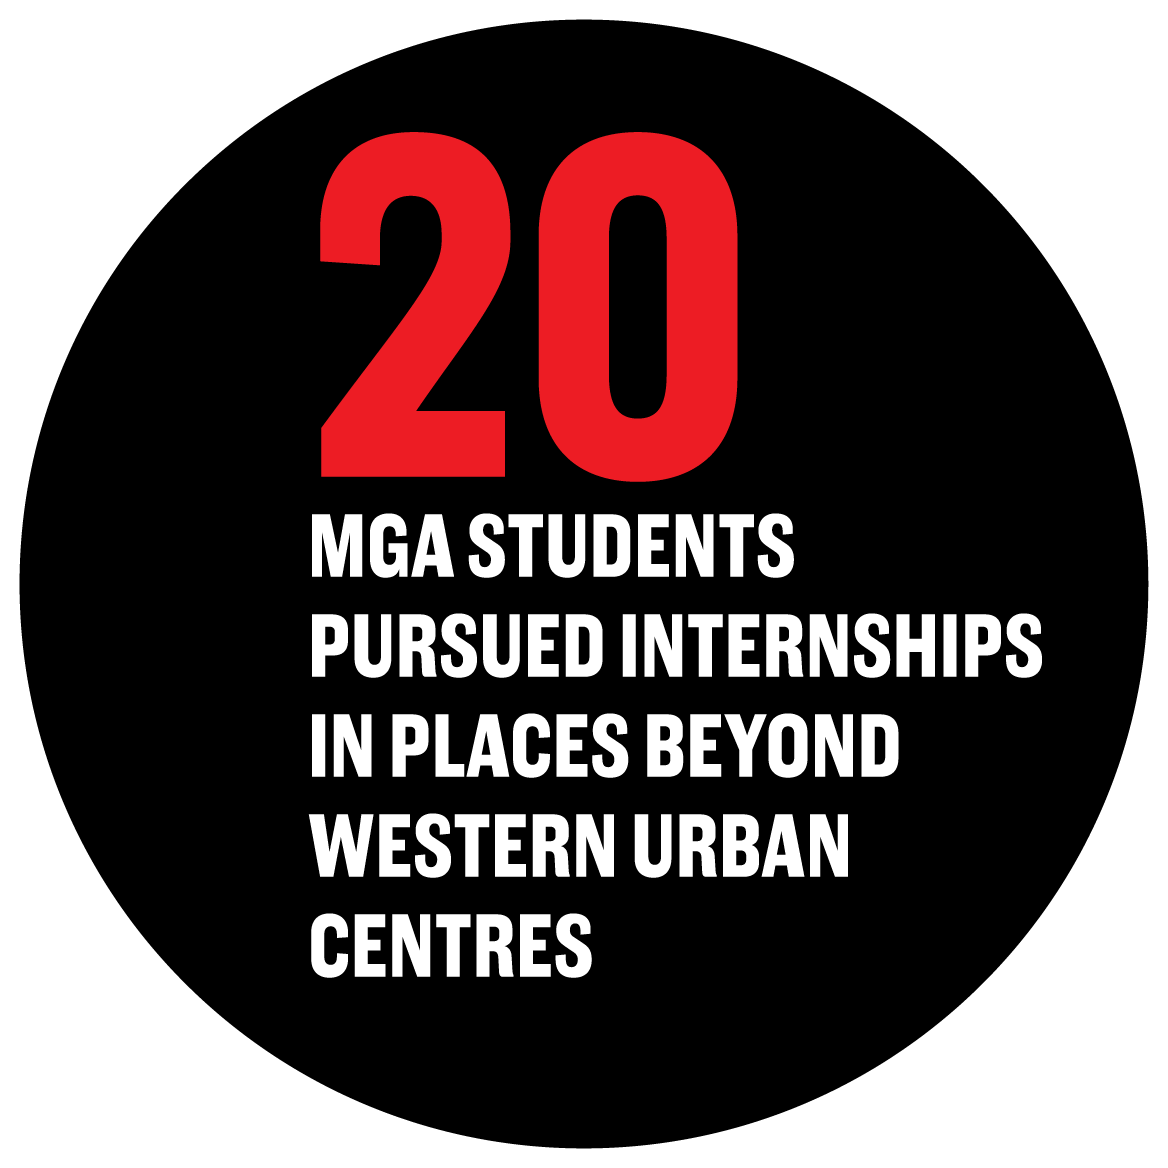 20 MGA students pursued internships in places beyond western urban centres.